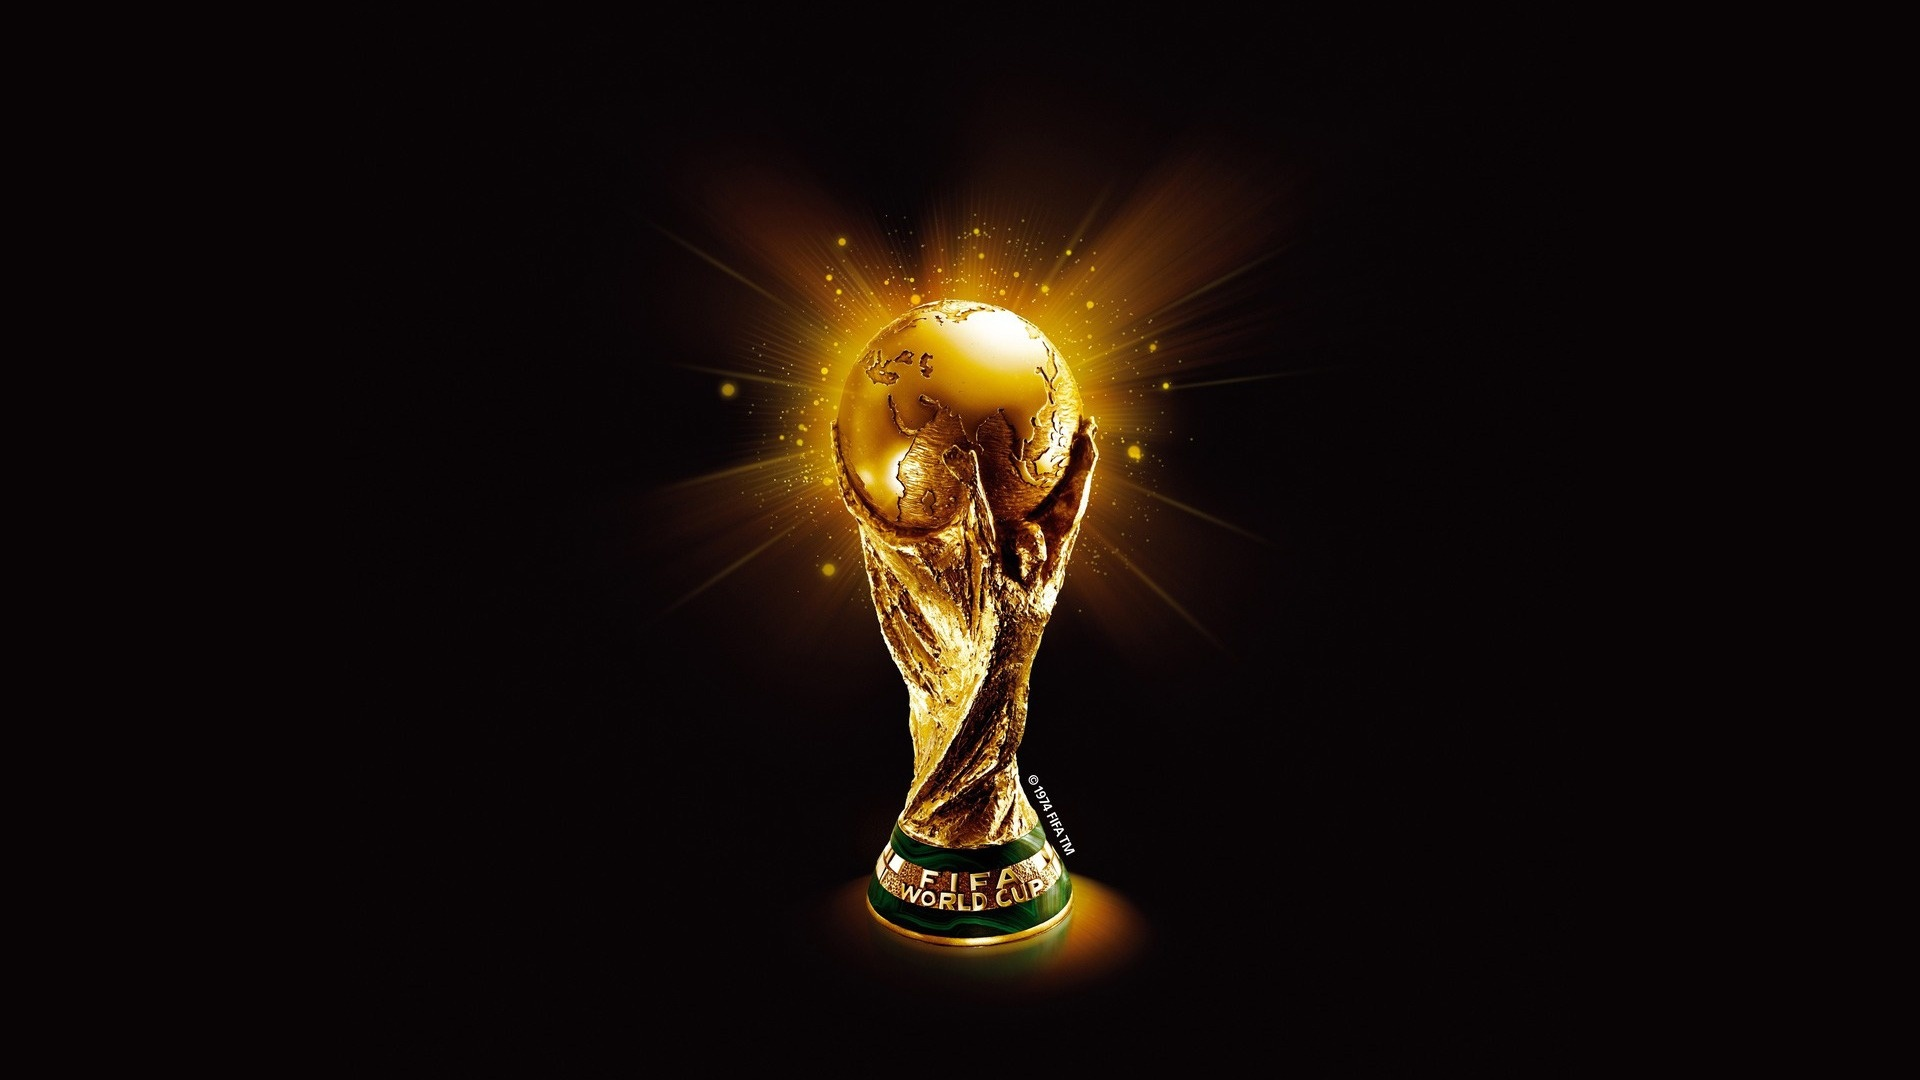 FIFA World Cup | Kaggle